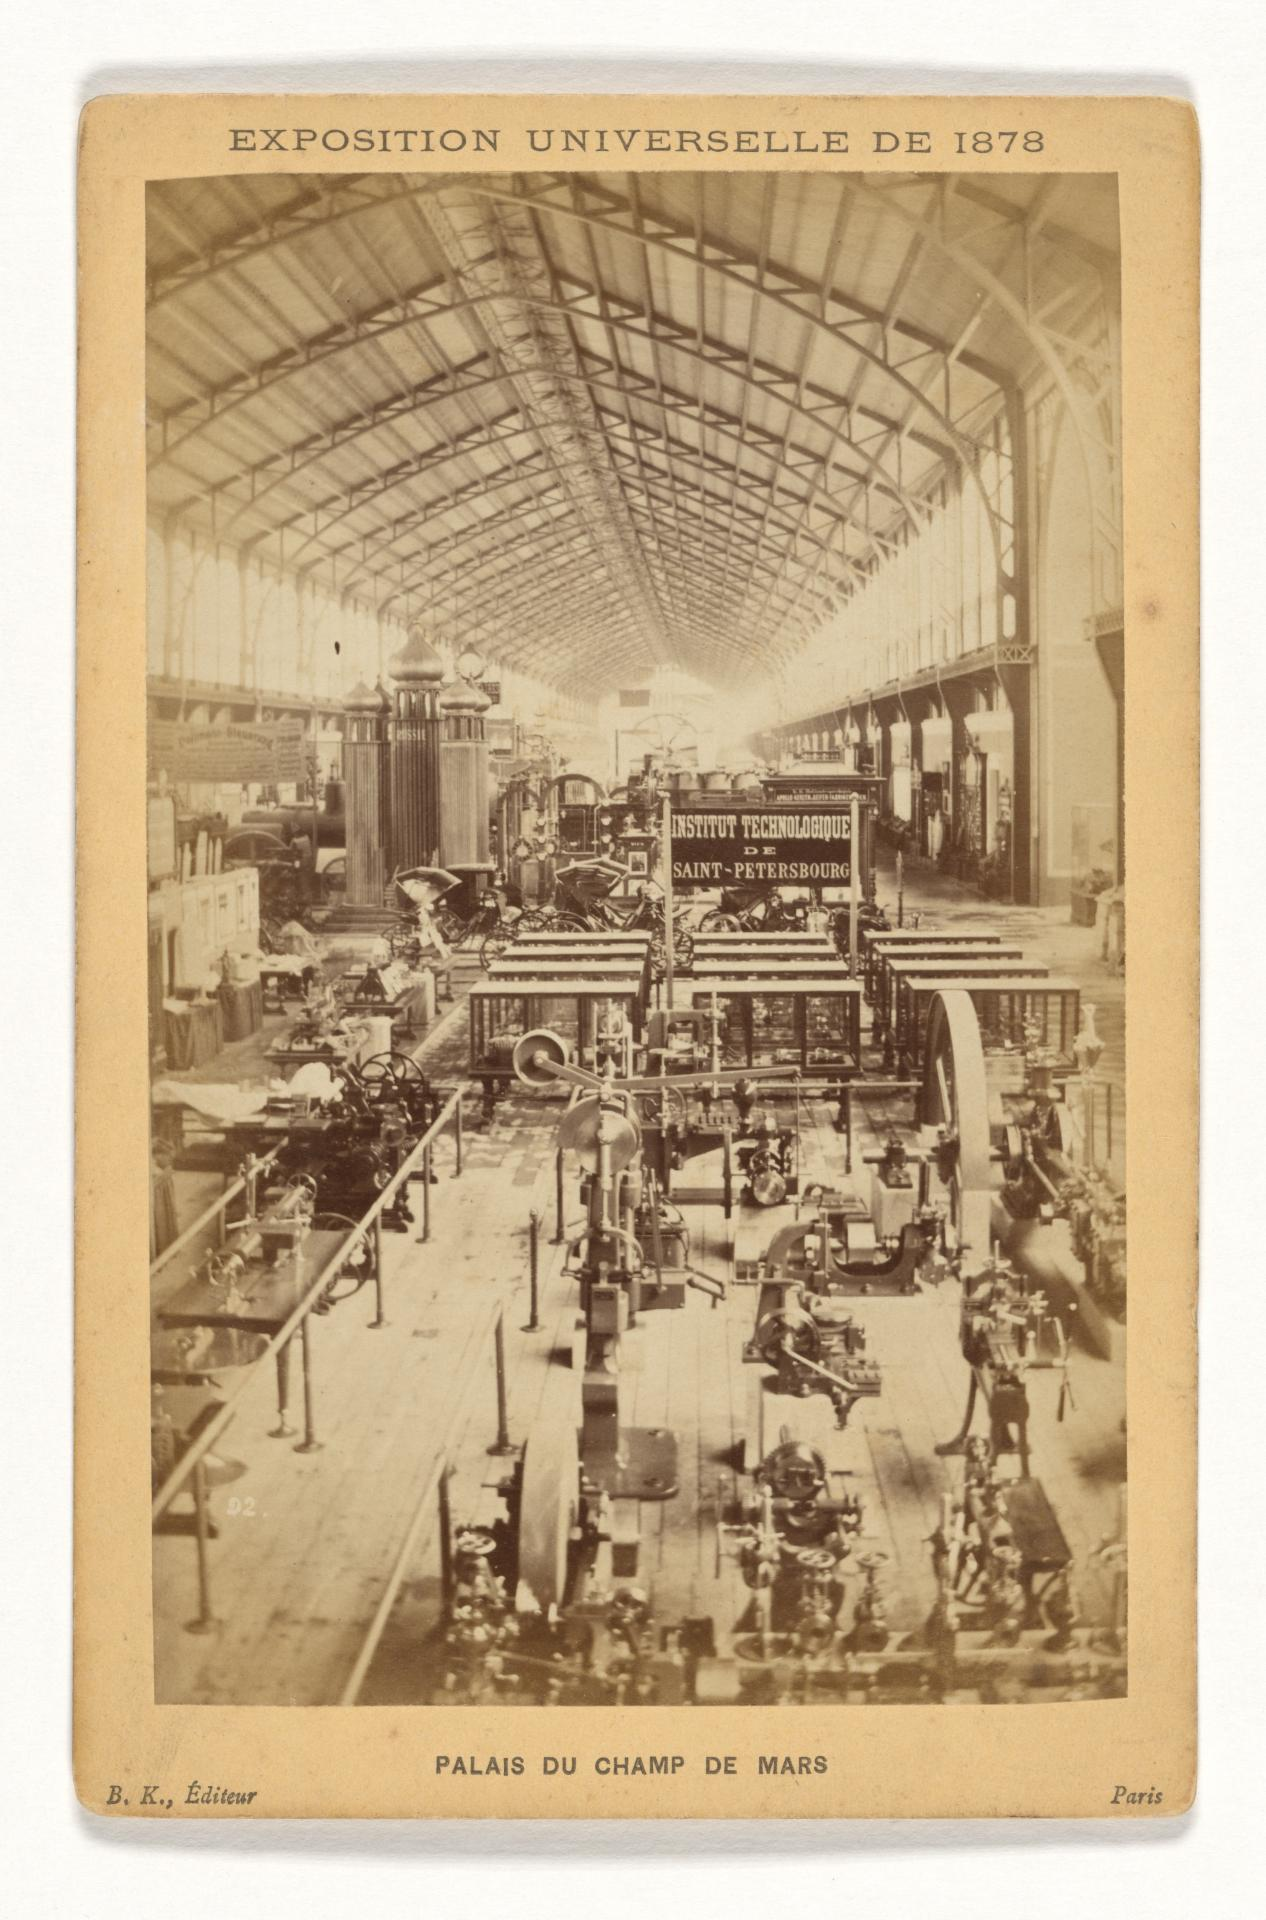 Universal Exposition, Paris. Palace of Champ de Mars, Machinery Hall, foreign section, cabinet print